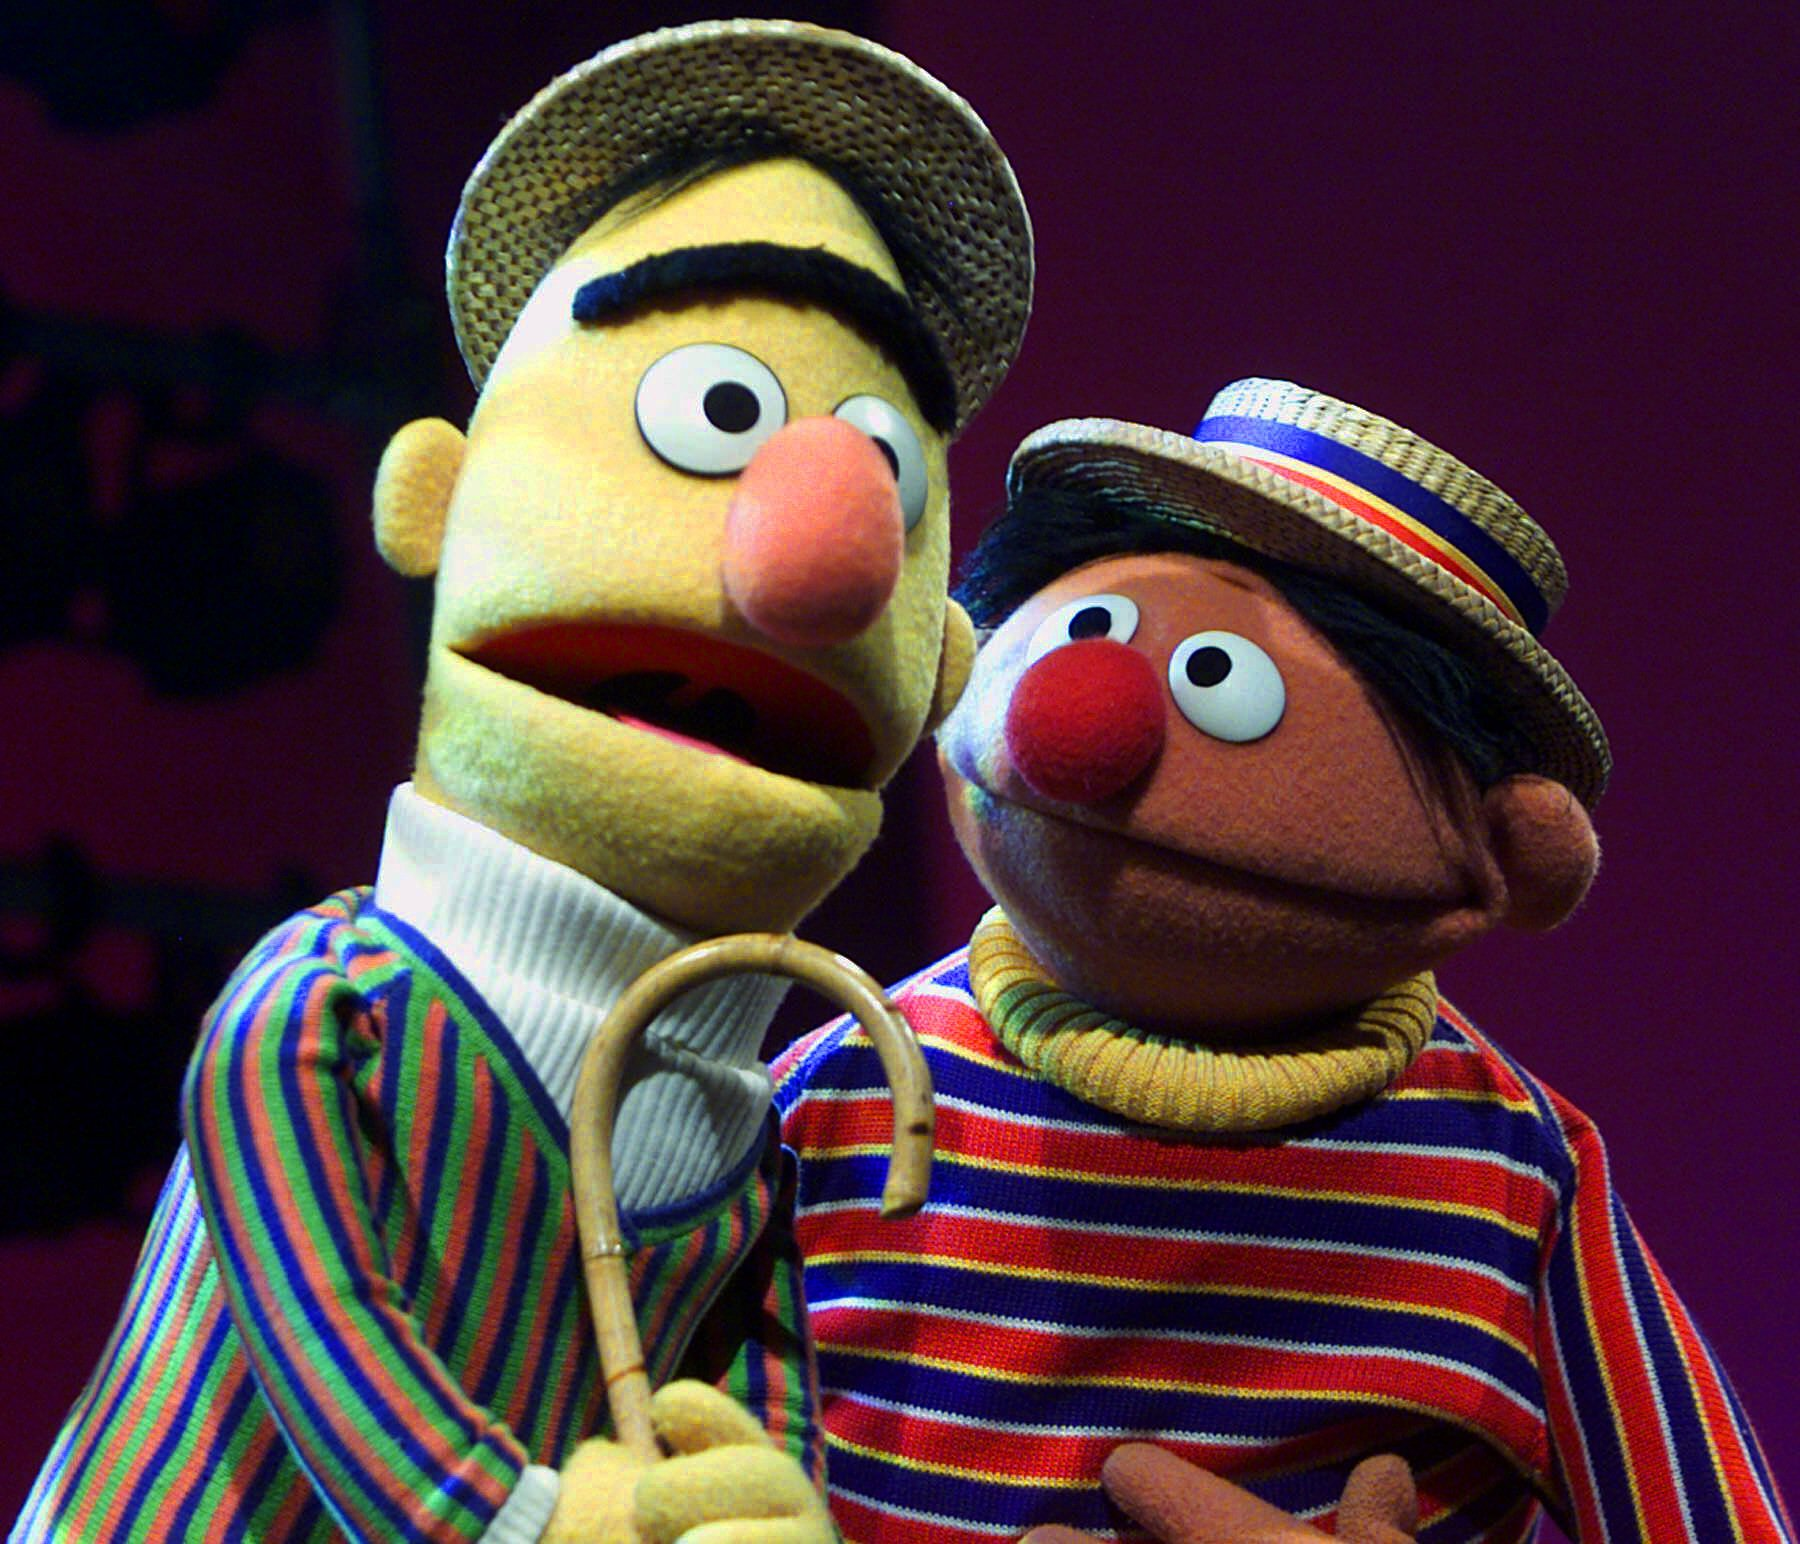 """Muppets Bert, left, and Ernie, from the children's program """"Sesame Street,"""" are shown in New York. An online petition calling for the nuptials of Muppet flat-mates Bert and Ernie has sparked controversy. Chicago resident Lair Scott, who posted the petition, is seeking matrimony for the """"Sesame Street"""" chums as a way to make gay and lesbian kids who watch the show feel better about themselves, and to promote tolerance for people who are different. Sesame Workshop, which produces the long-running children's series, declared in a statement, """"They were created to teach preschoolers that people can be good friends with those who are very different from themselves."""" (AP Photo/Beth A. Keiser, file)"""